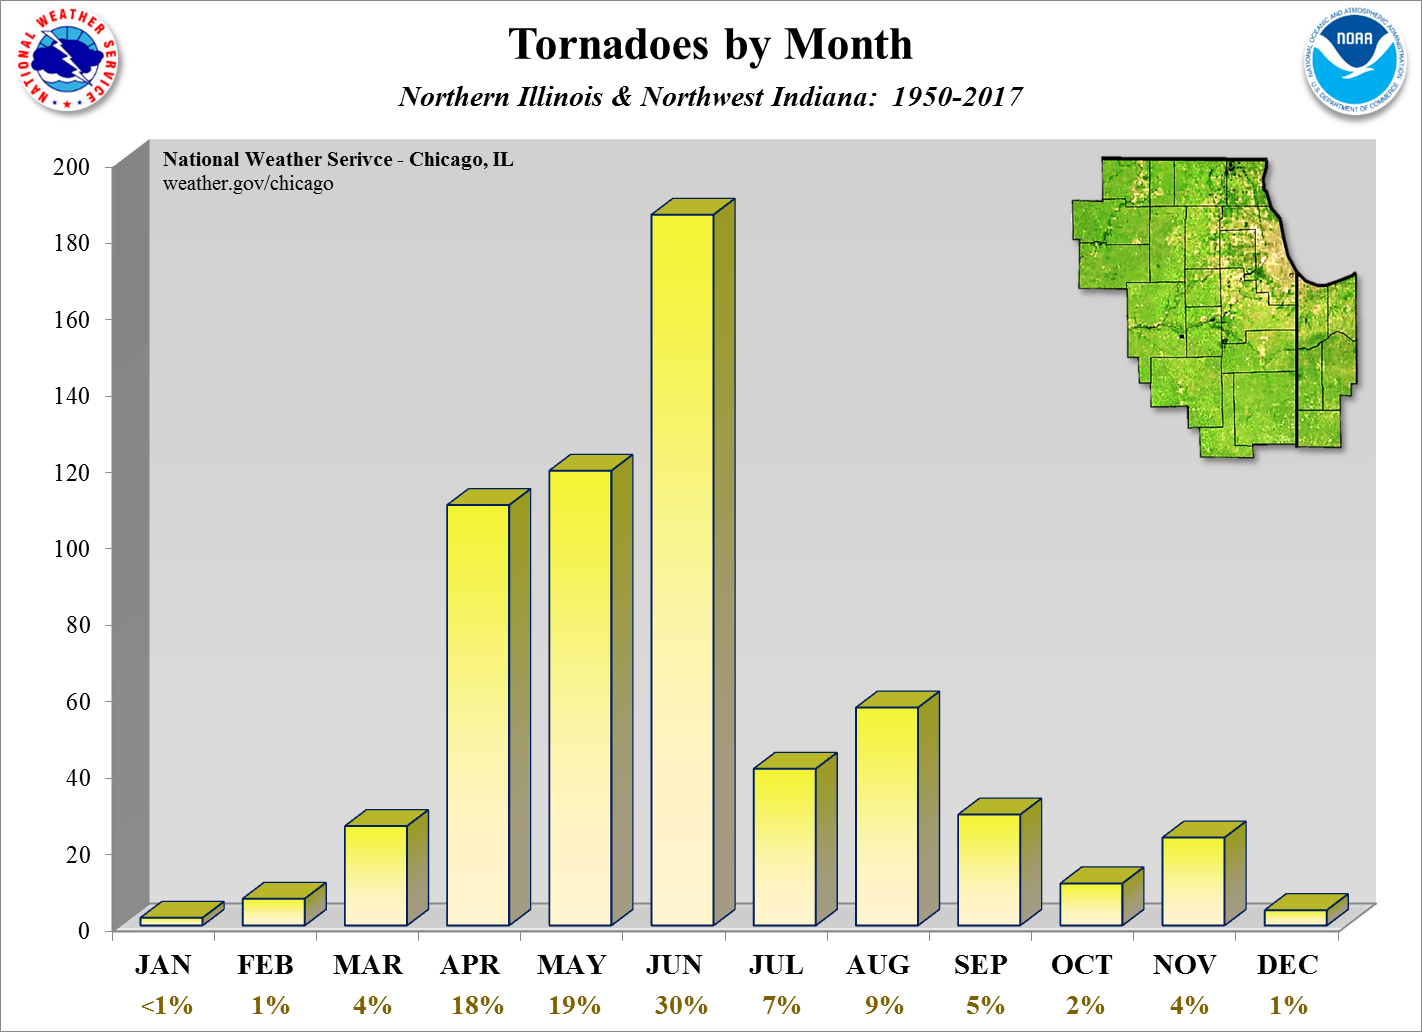 Tornadoes by Time of Year